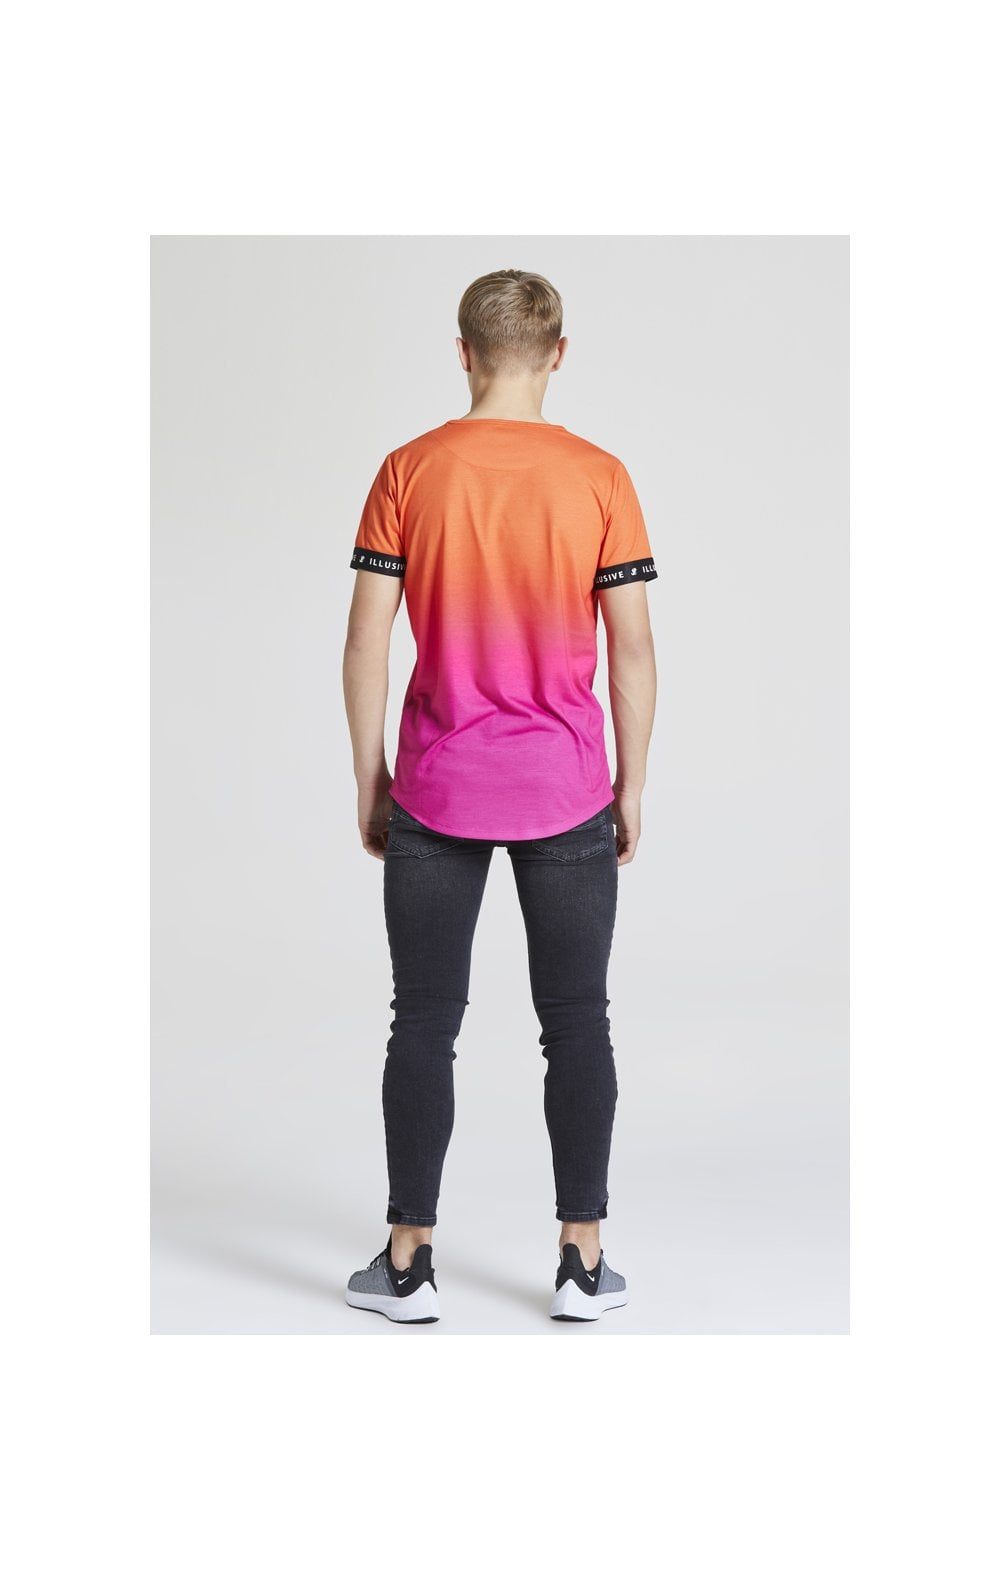 Load image into Gallery viewer, Illusive London Fade Tech Tee - Orange & Pink (4)